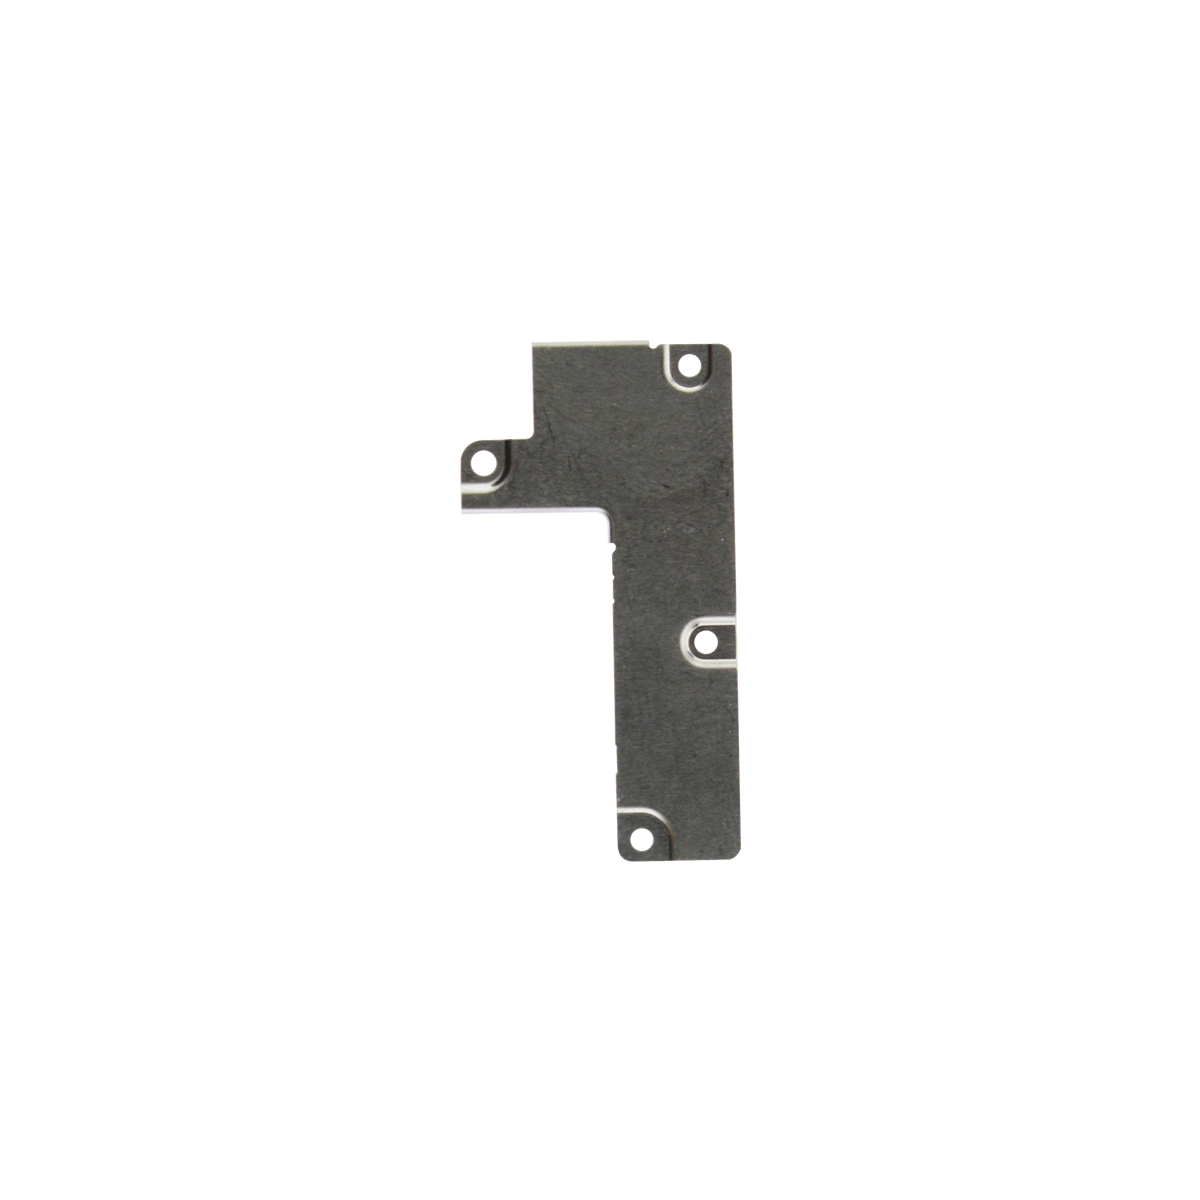 iPhone 7 Plus Display Assembly & Battery Cables Bracket